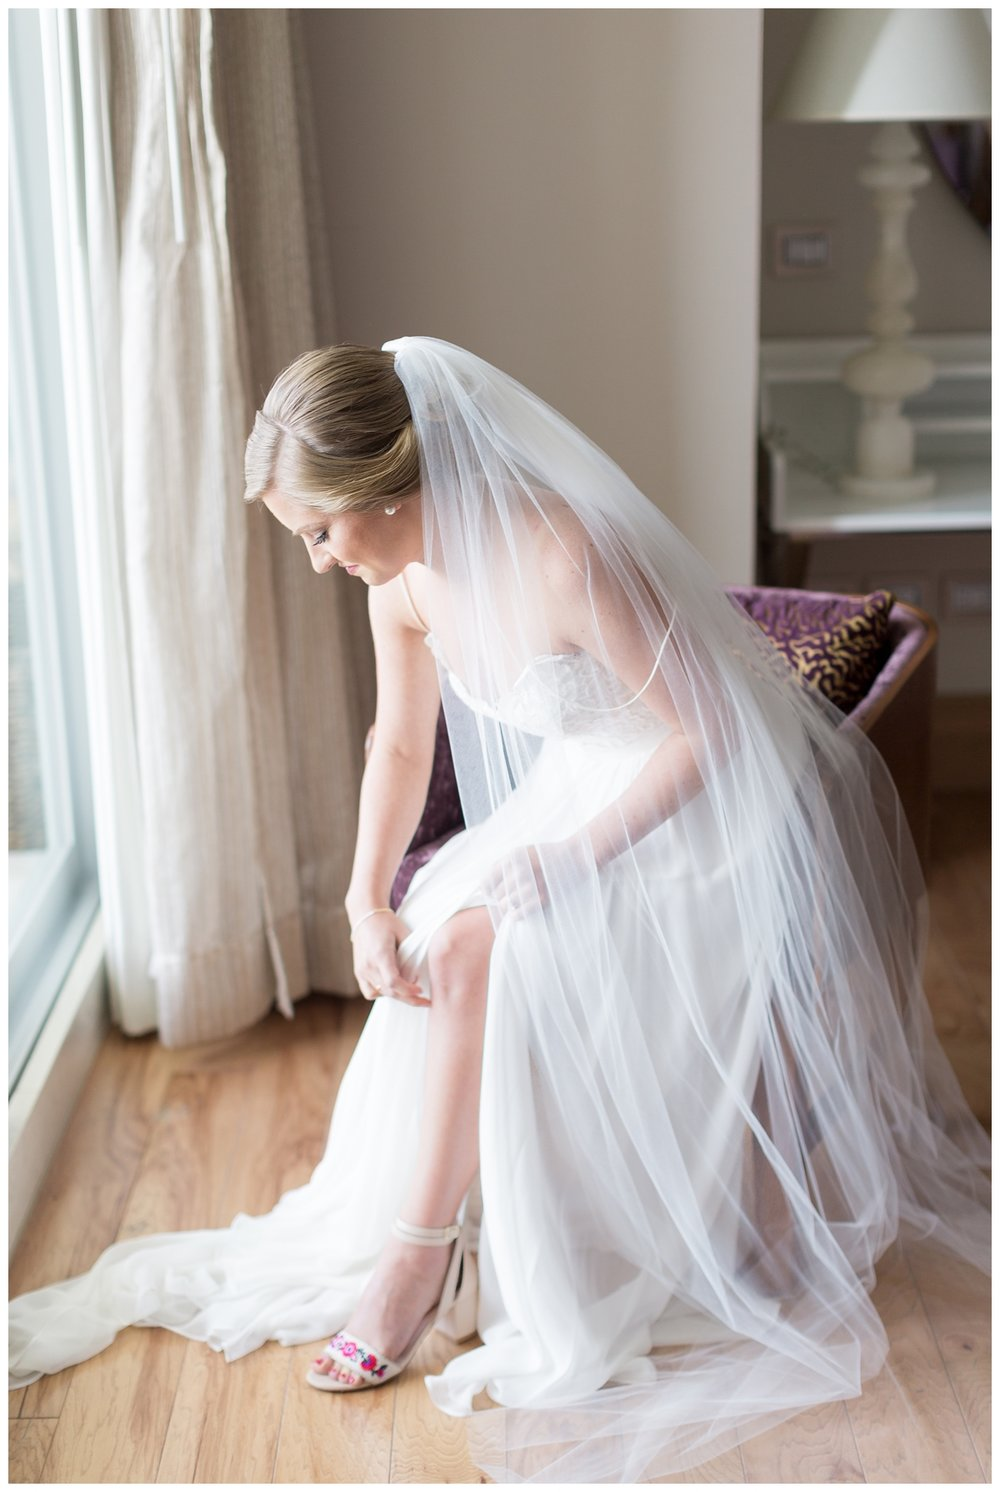 destination wedding photographer captures a bride in Mexico right before she heads out to see her husband at their first look